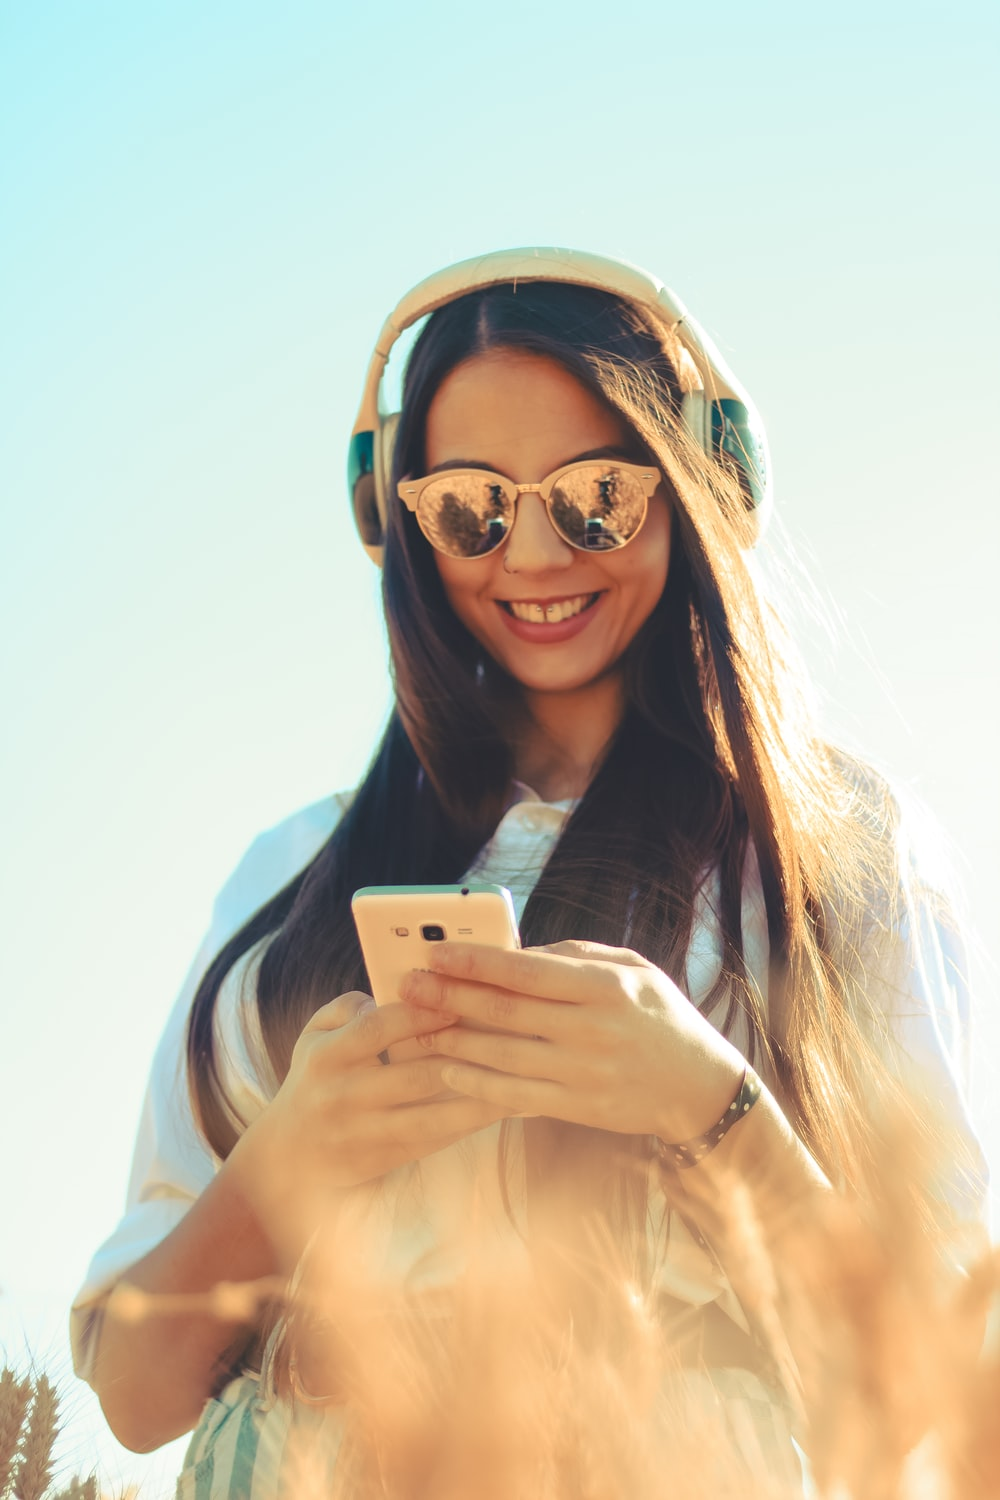 woman standing and smiling while using phone